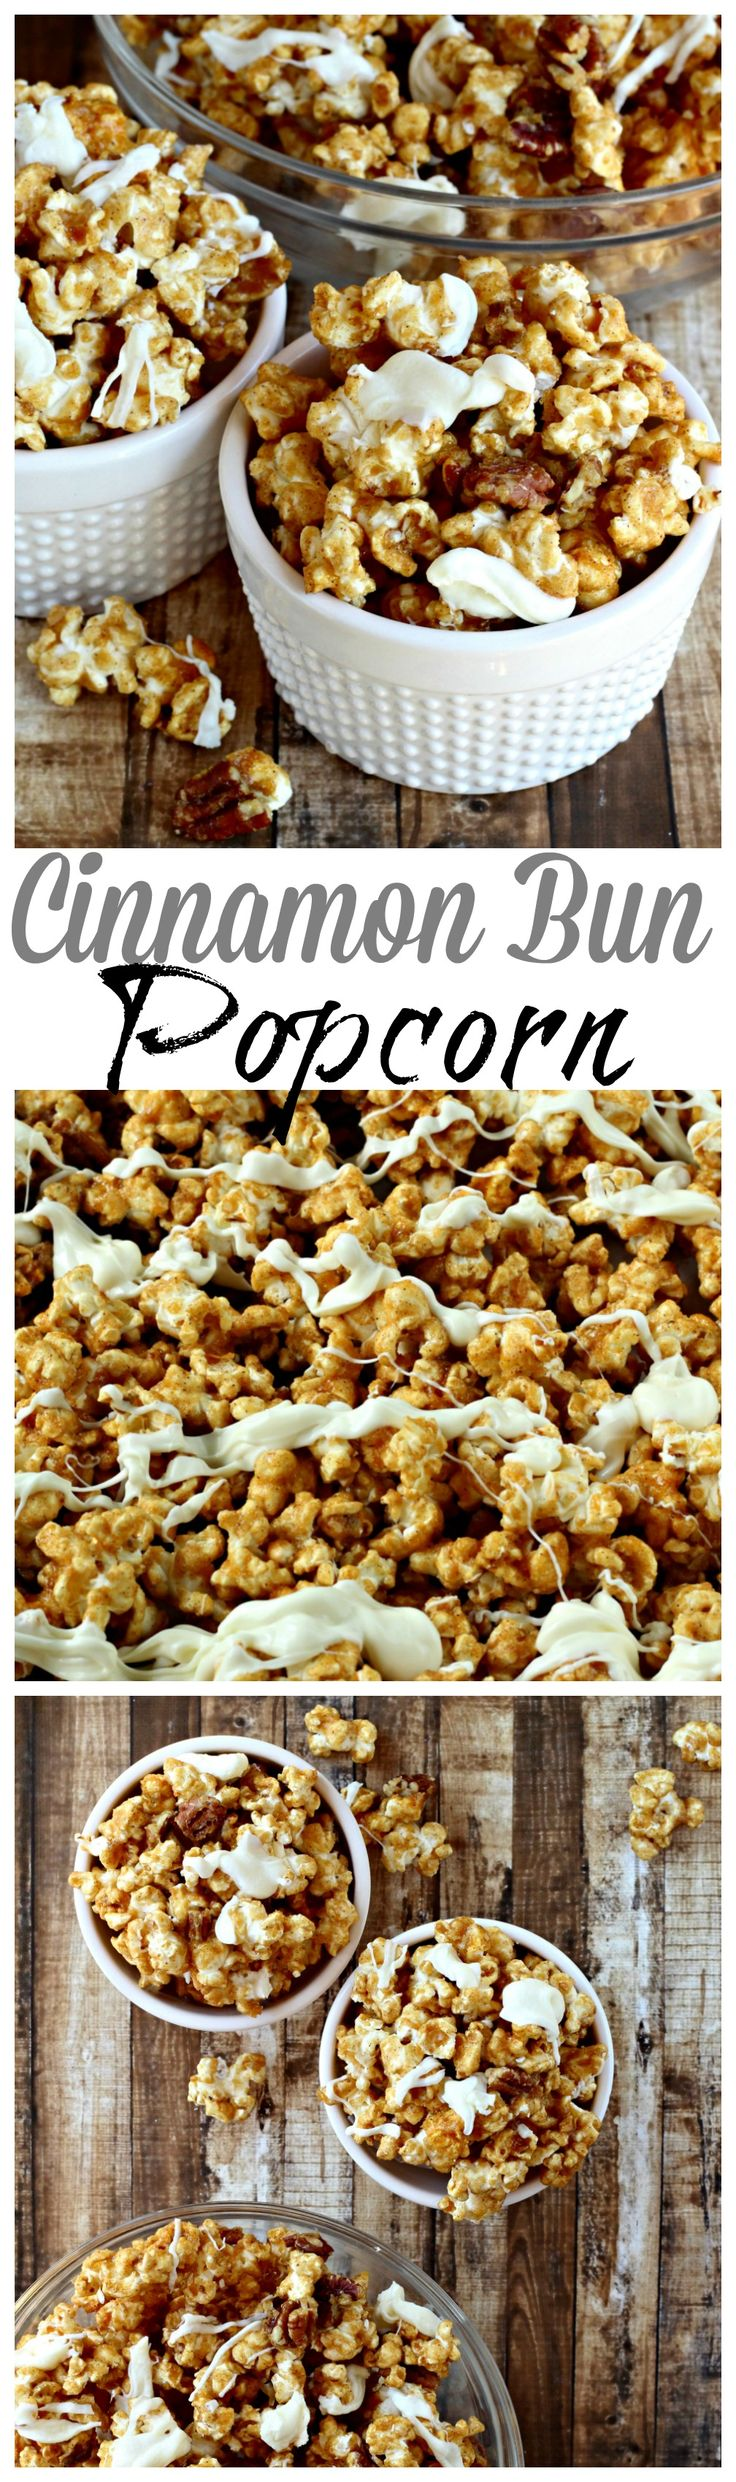 Pop Secret Popcorn topped with cinnamon-sugar and white chocolate, tastes just like a cinnamon bun!